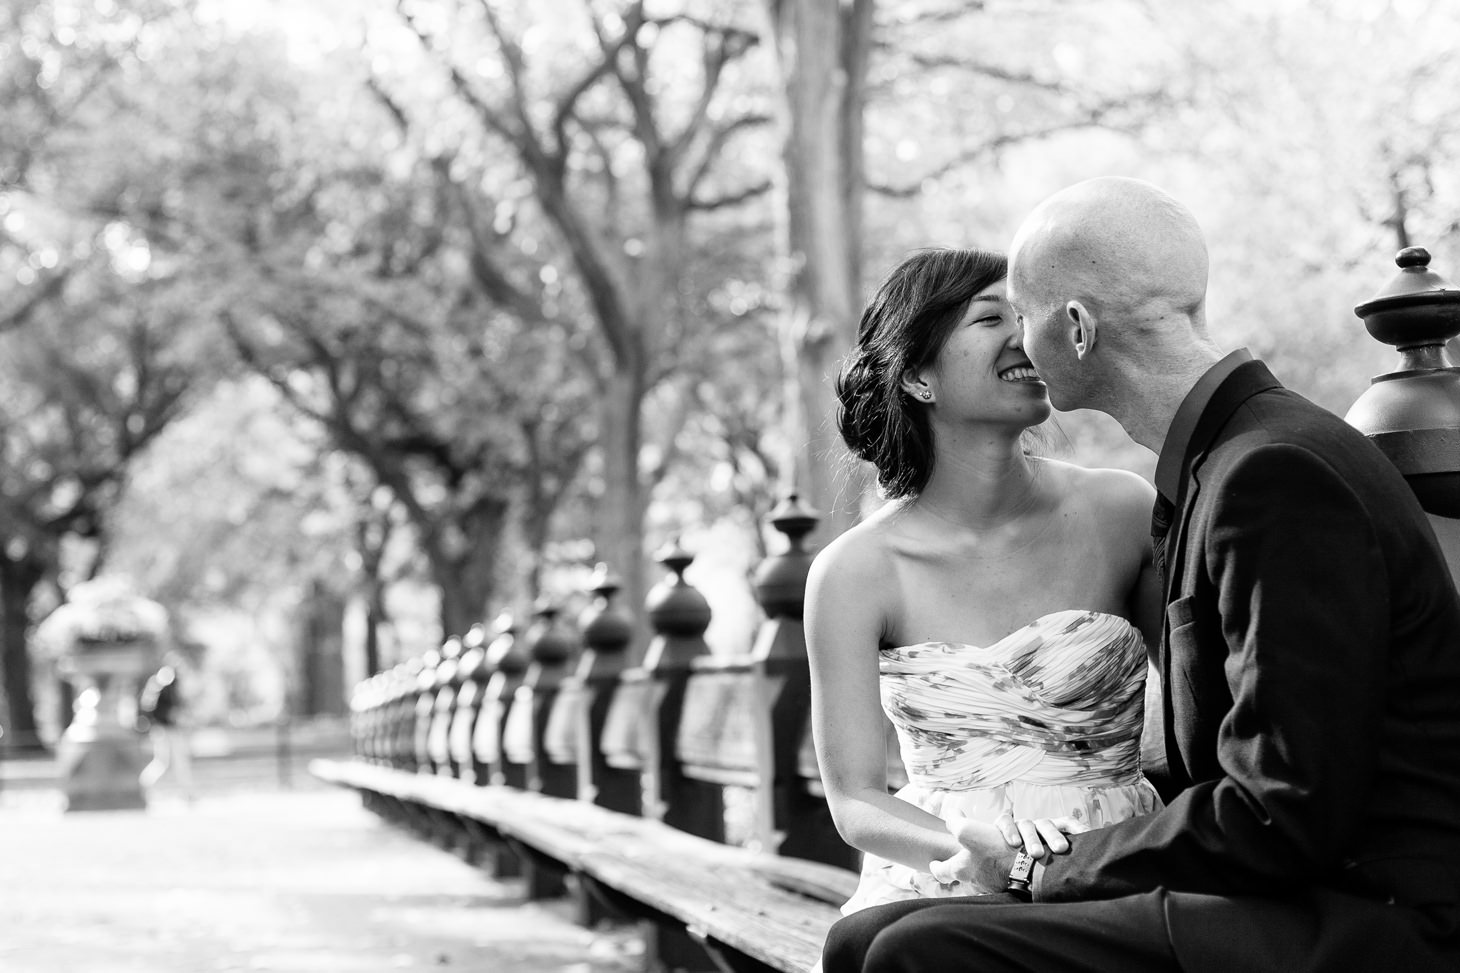 015-NYC-Elopement-Photography-SmittenChickens-Central-Park-Mandy-Sean.jpg